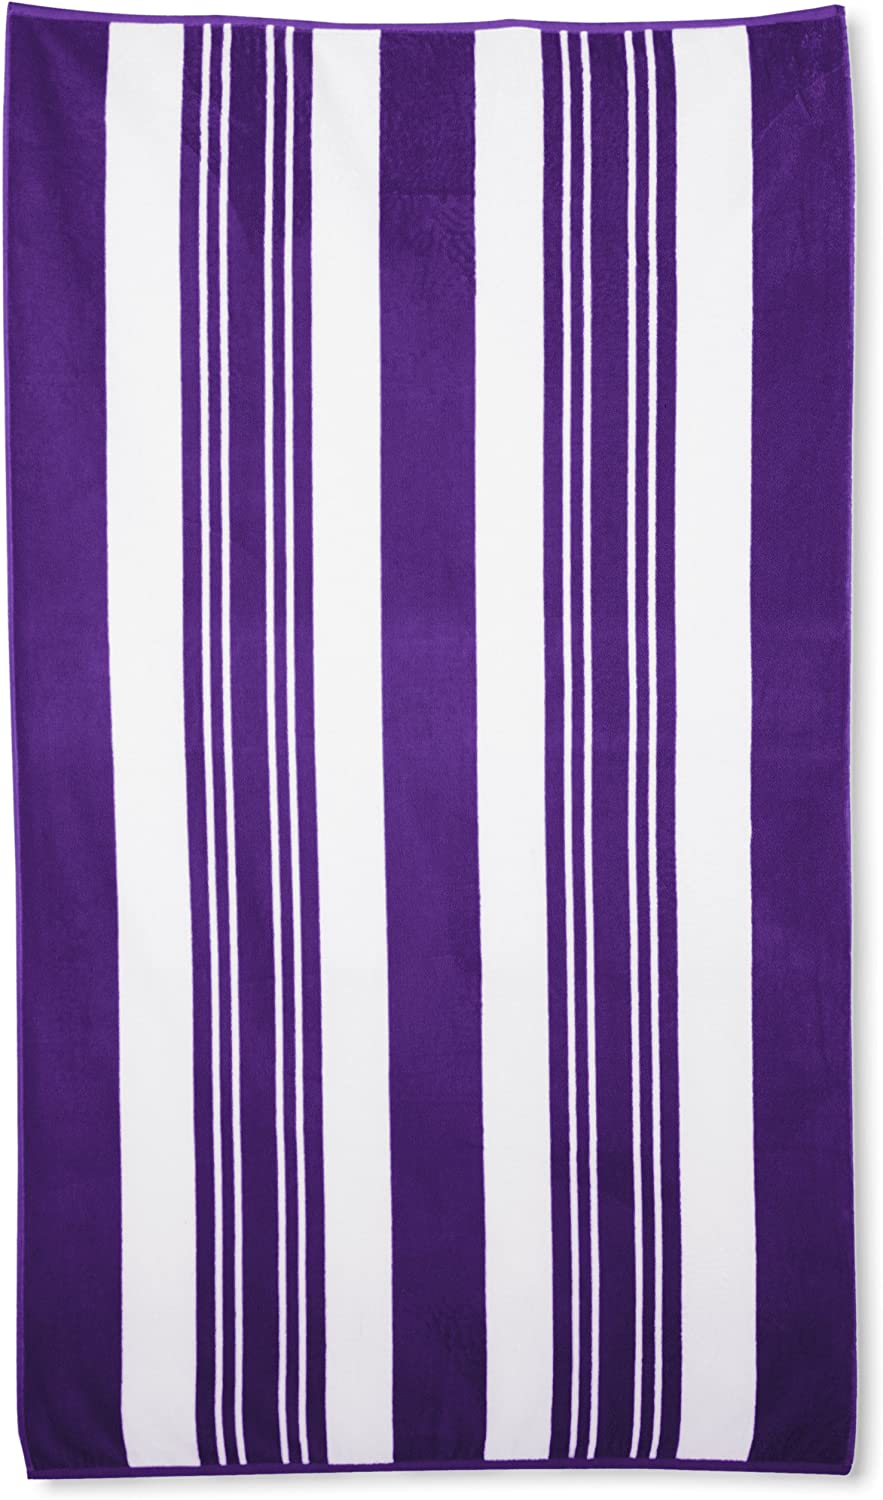 Northpoint Sorrento Combed Cotton Thick Terry Oversized Beach Towel, 40 by 70-Inch